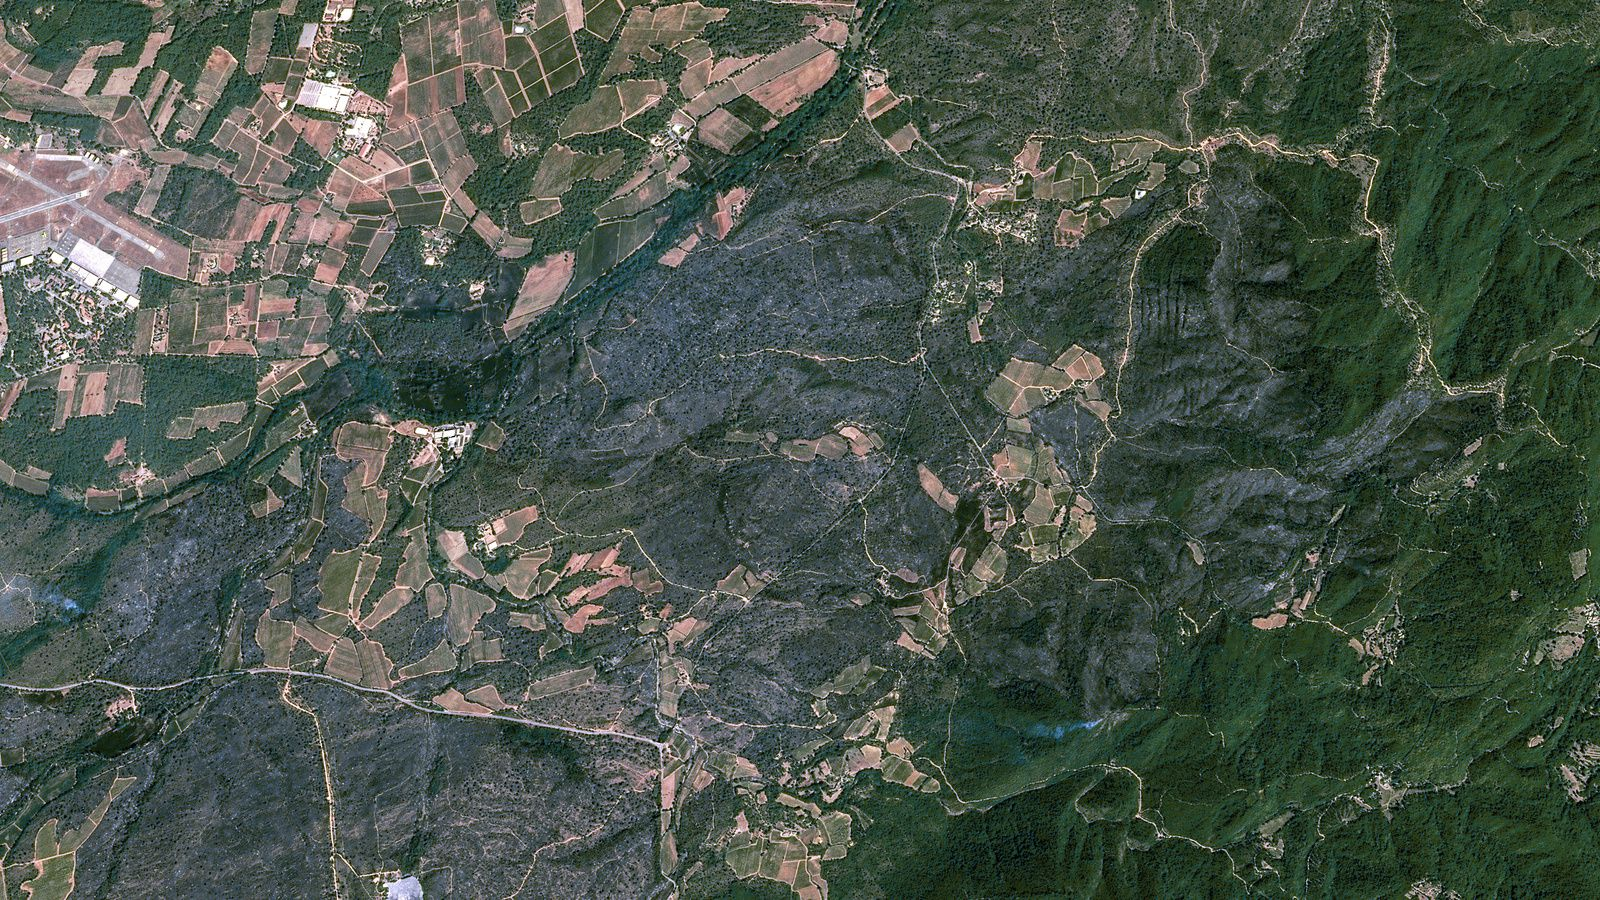 Incendie Var - Plaine des Maures - Satellite - SPOT 6 - Copernicus - Cartographie rapide - Emergency mapping - Airbus Defence and Space